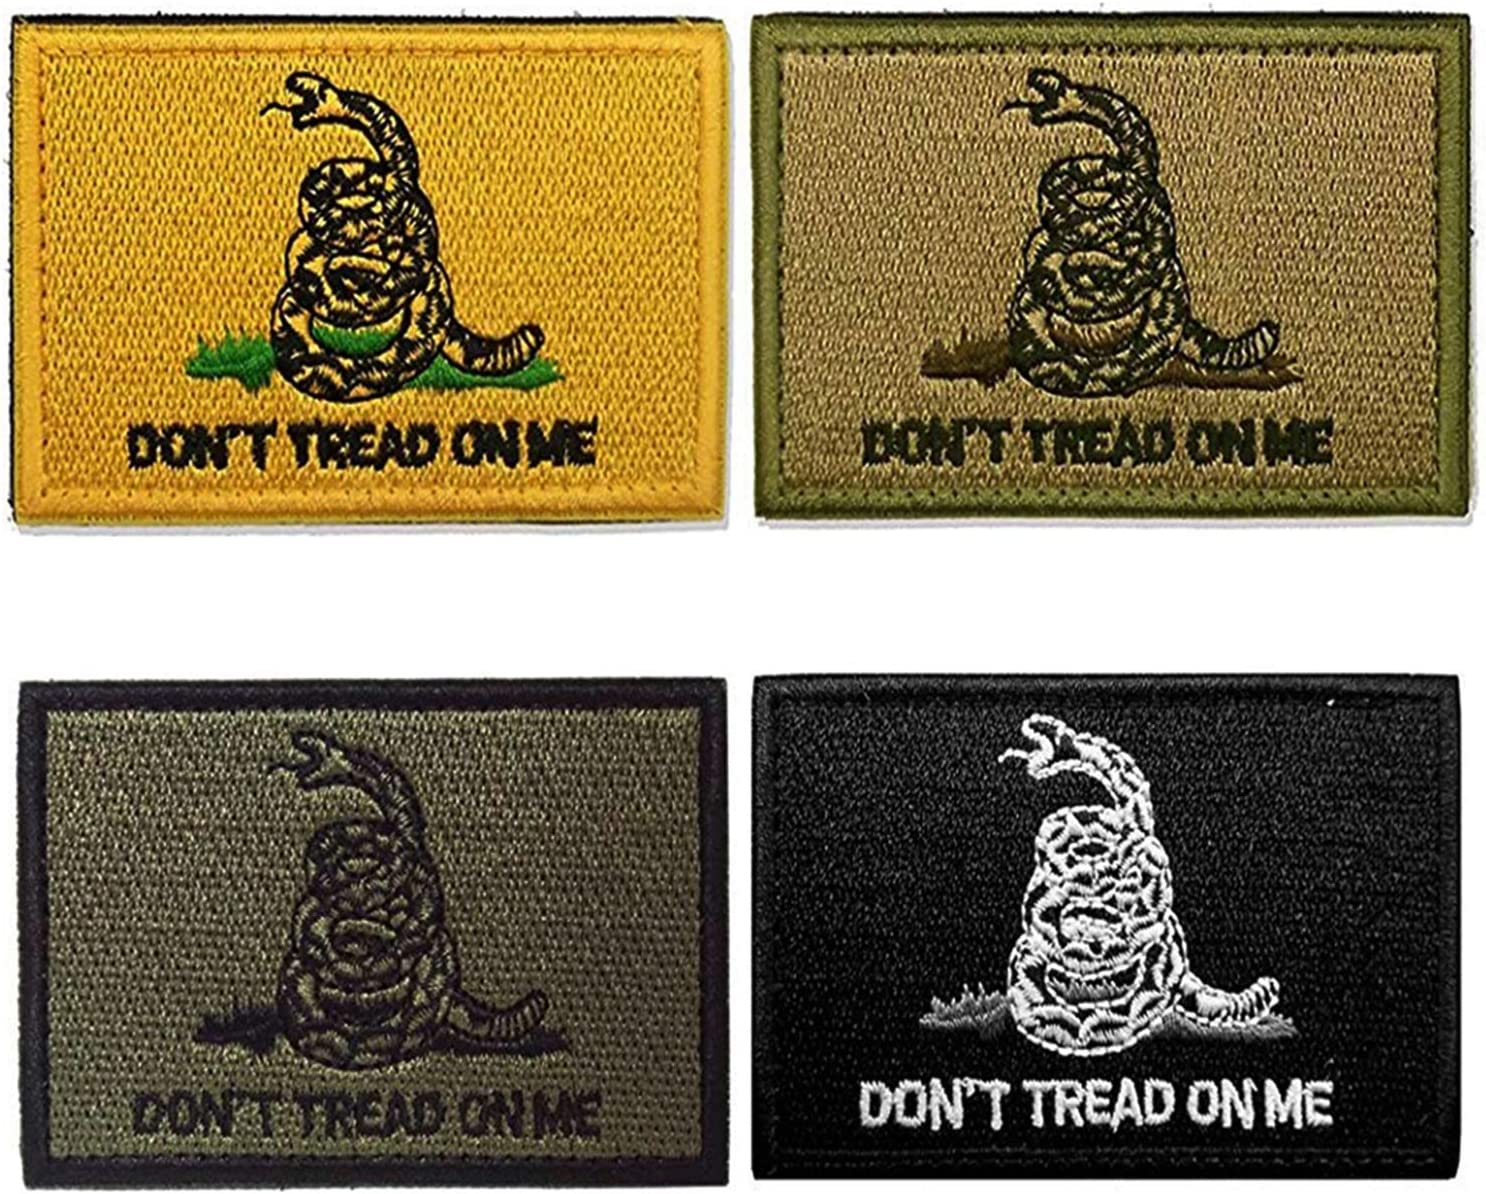 AxeSickle 2x3 Inch Dont Tread on me Embroidered Patch American Flag Patch Tactical Military Morale Patch 4 Pcs.